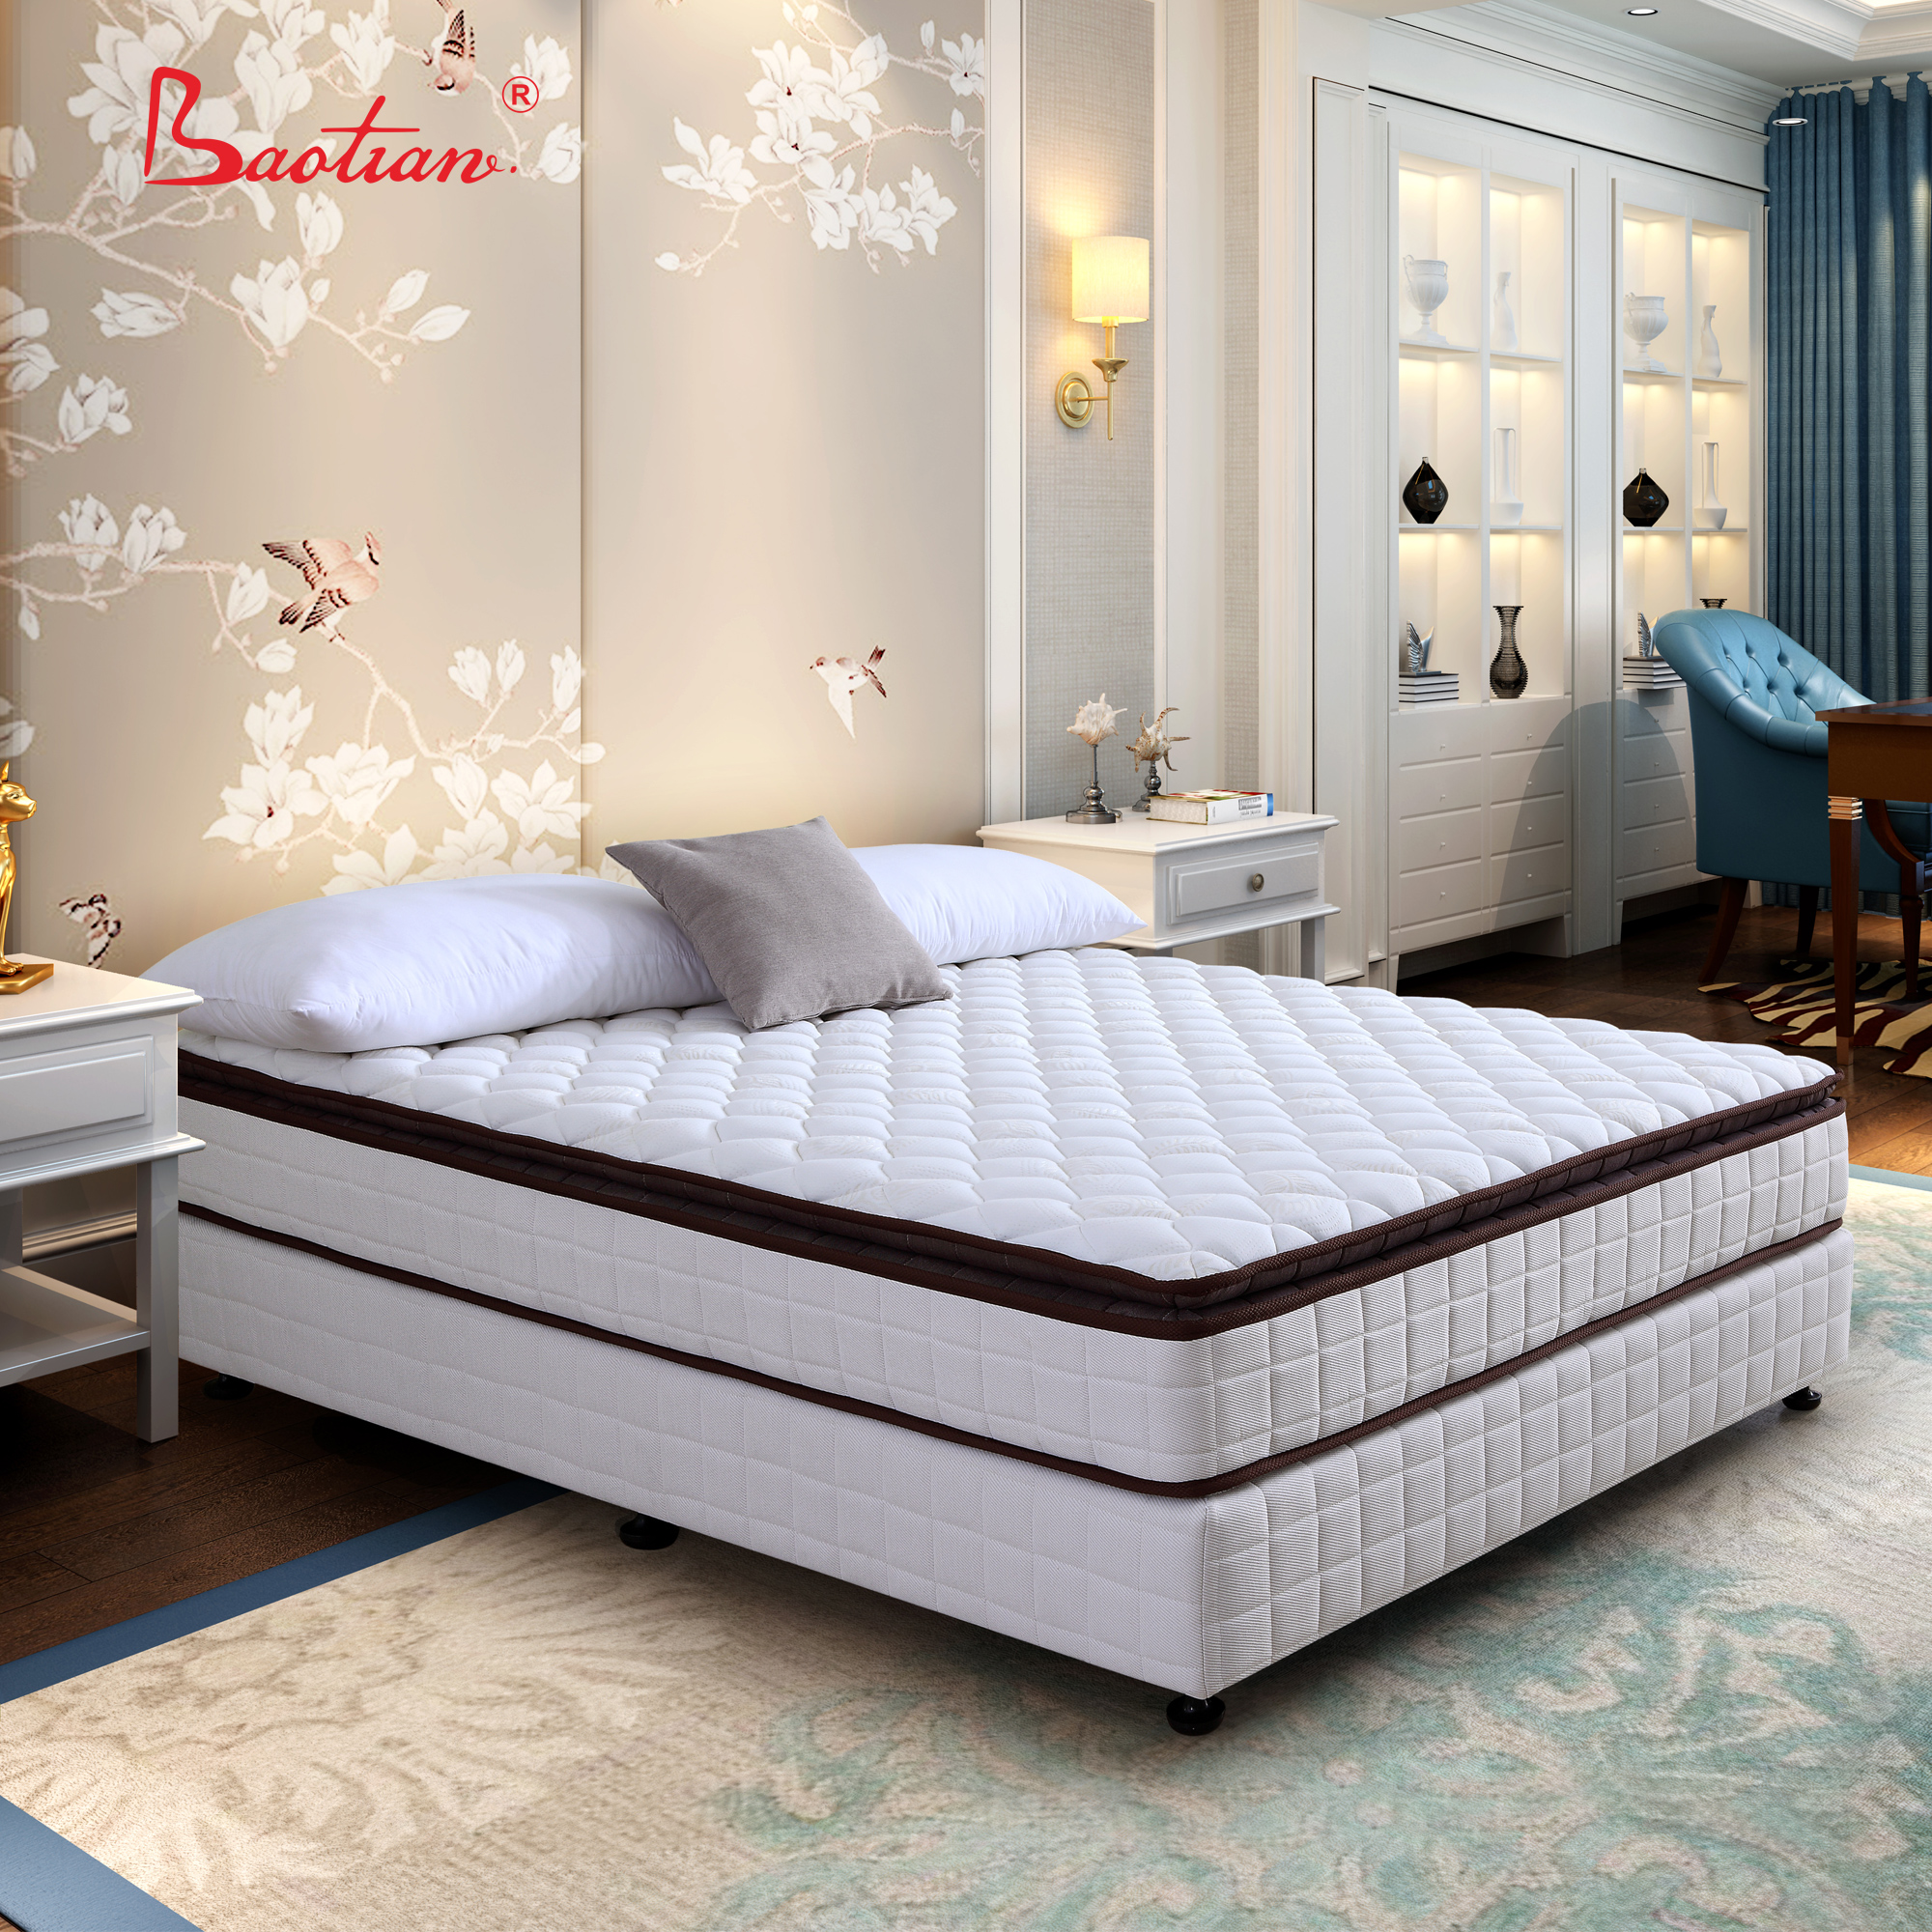 5 star hotel bed mattress with memory foam pillow top or living room sleepwell pocket spring mattress bedroom furniture factory